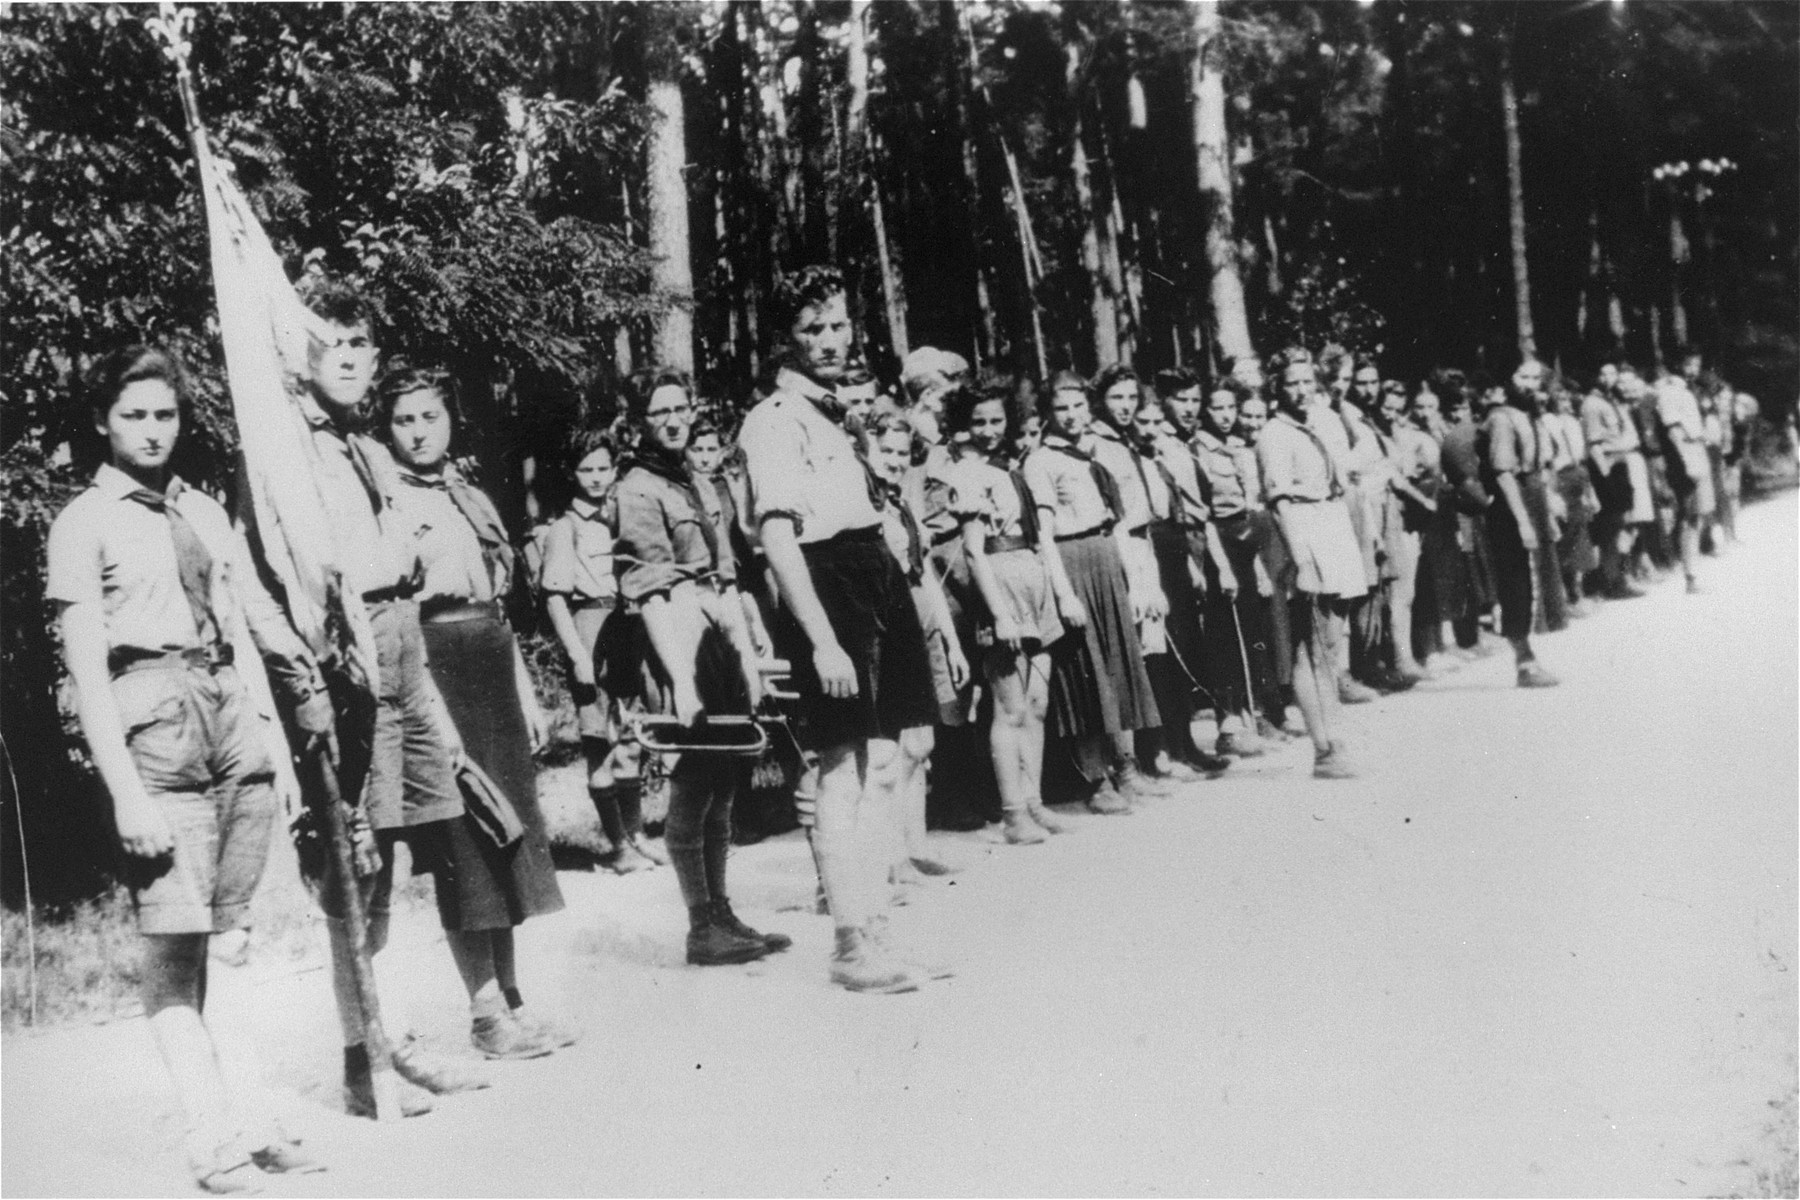 Members of the Hashomer Hatzair Zionist youth movement stand in formation along a road, several of them holding musical instruments.  Among those pictured is Meyer Zarnowiecki (holding a trumpet).